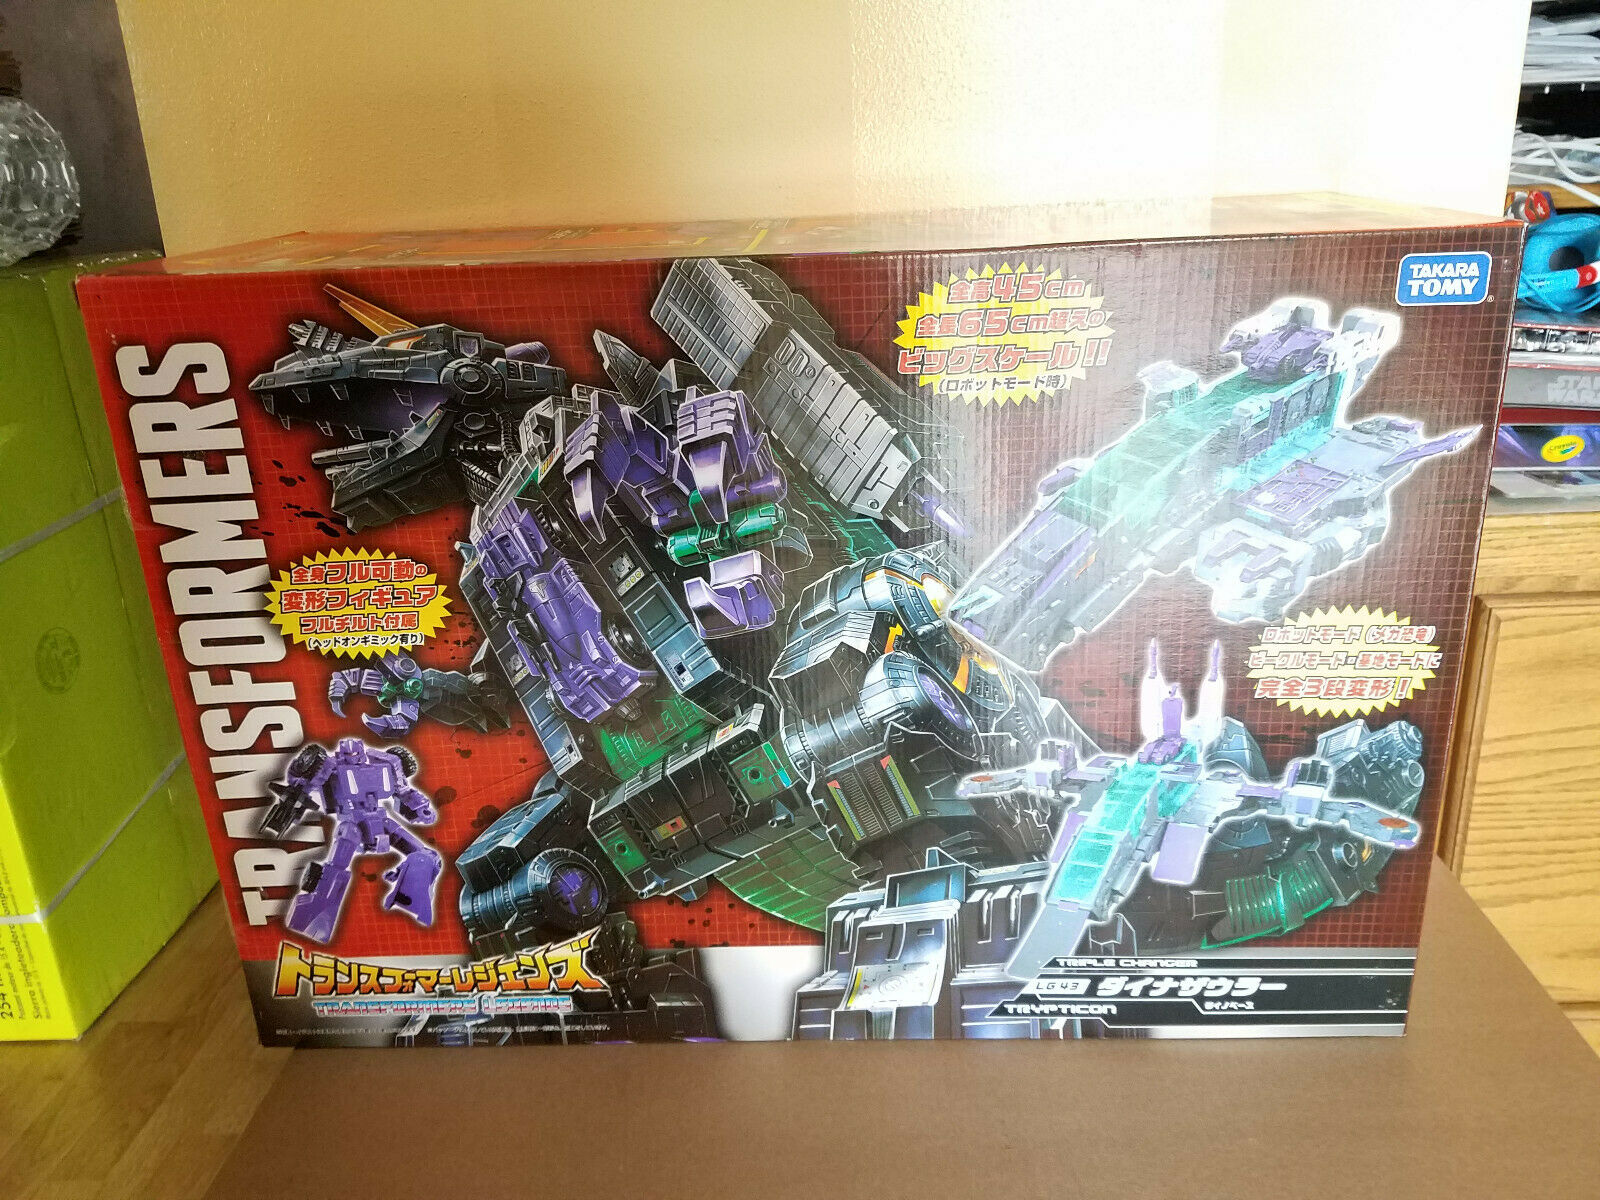 Transformers  Takara LG43 LG-43 Legends Trypticon Dinosaure G1  prix le moins cher